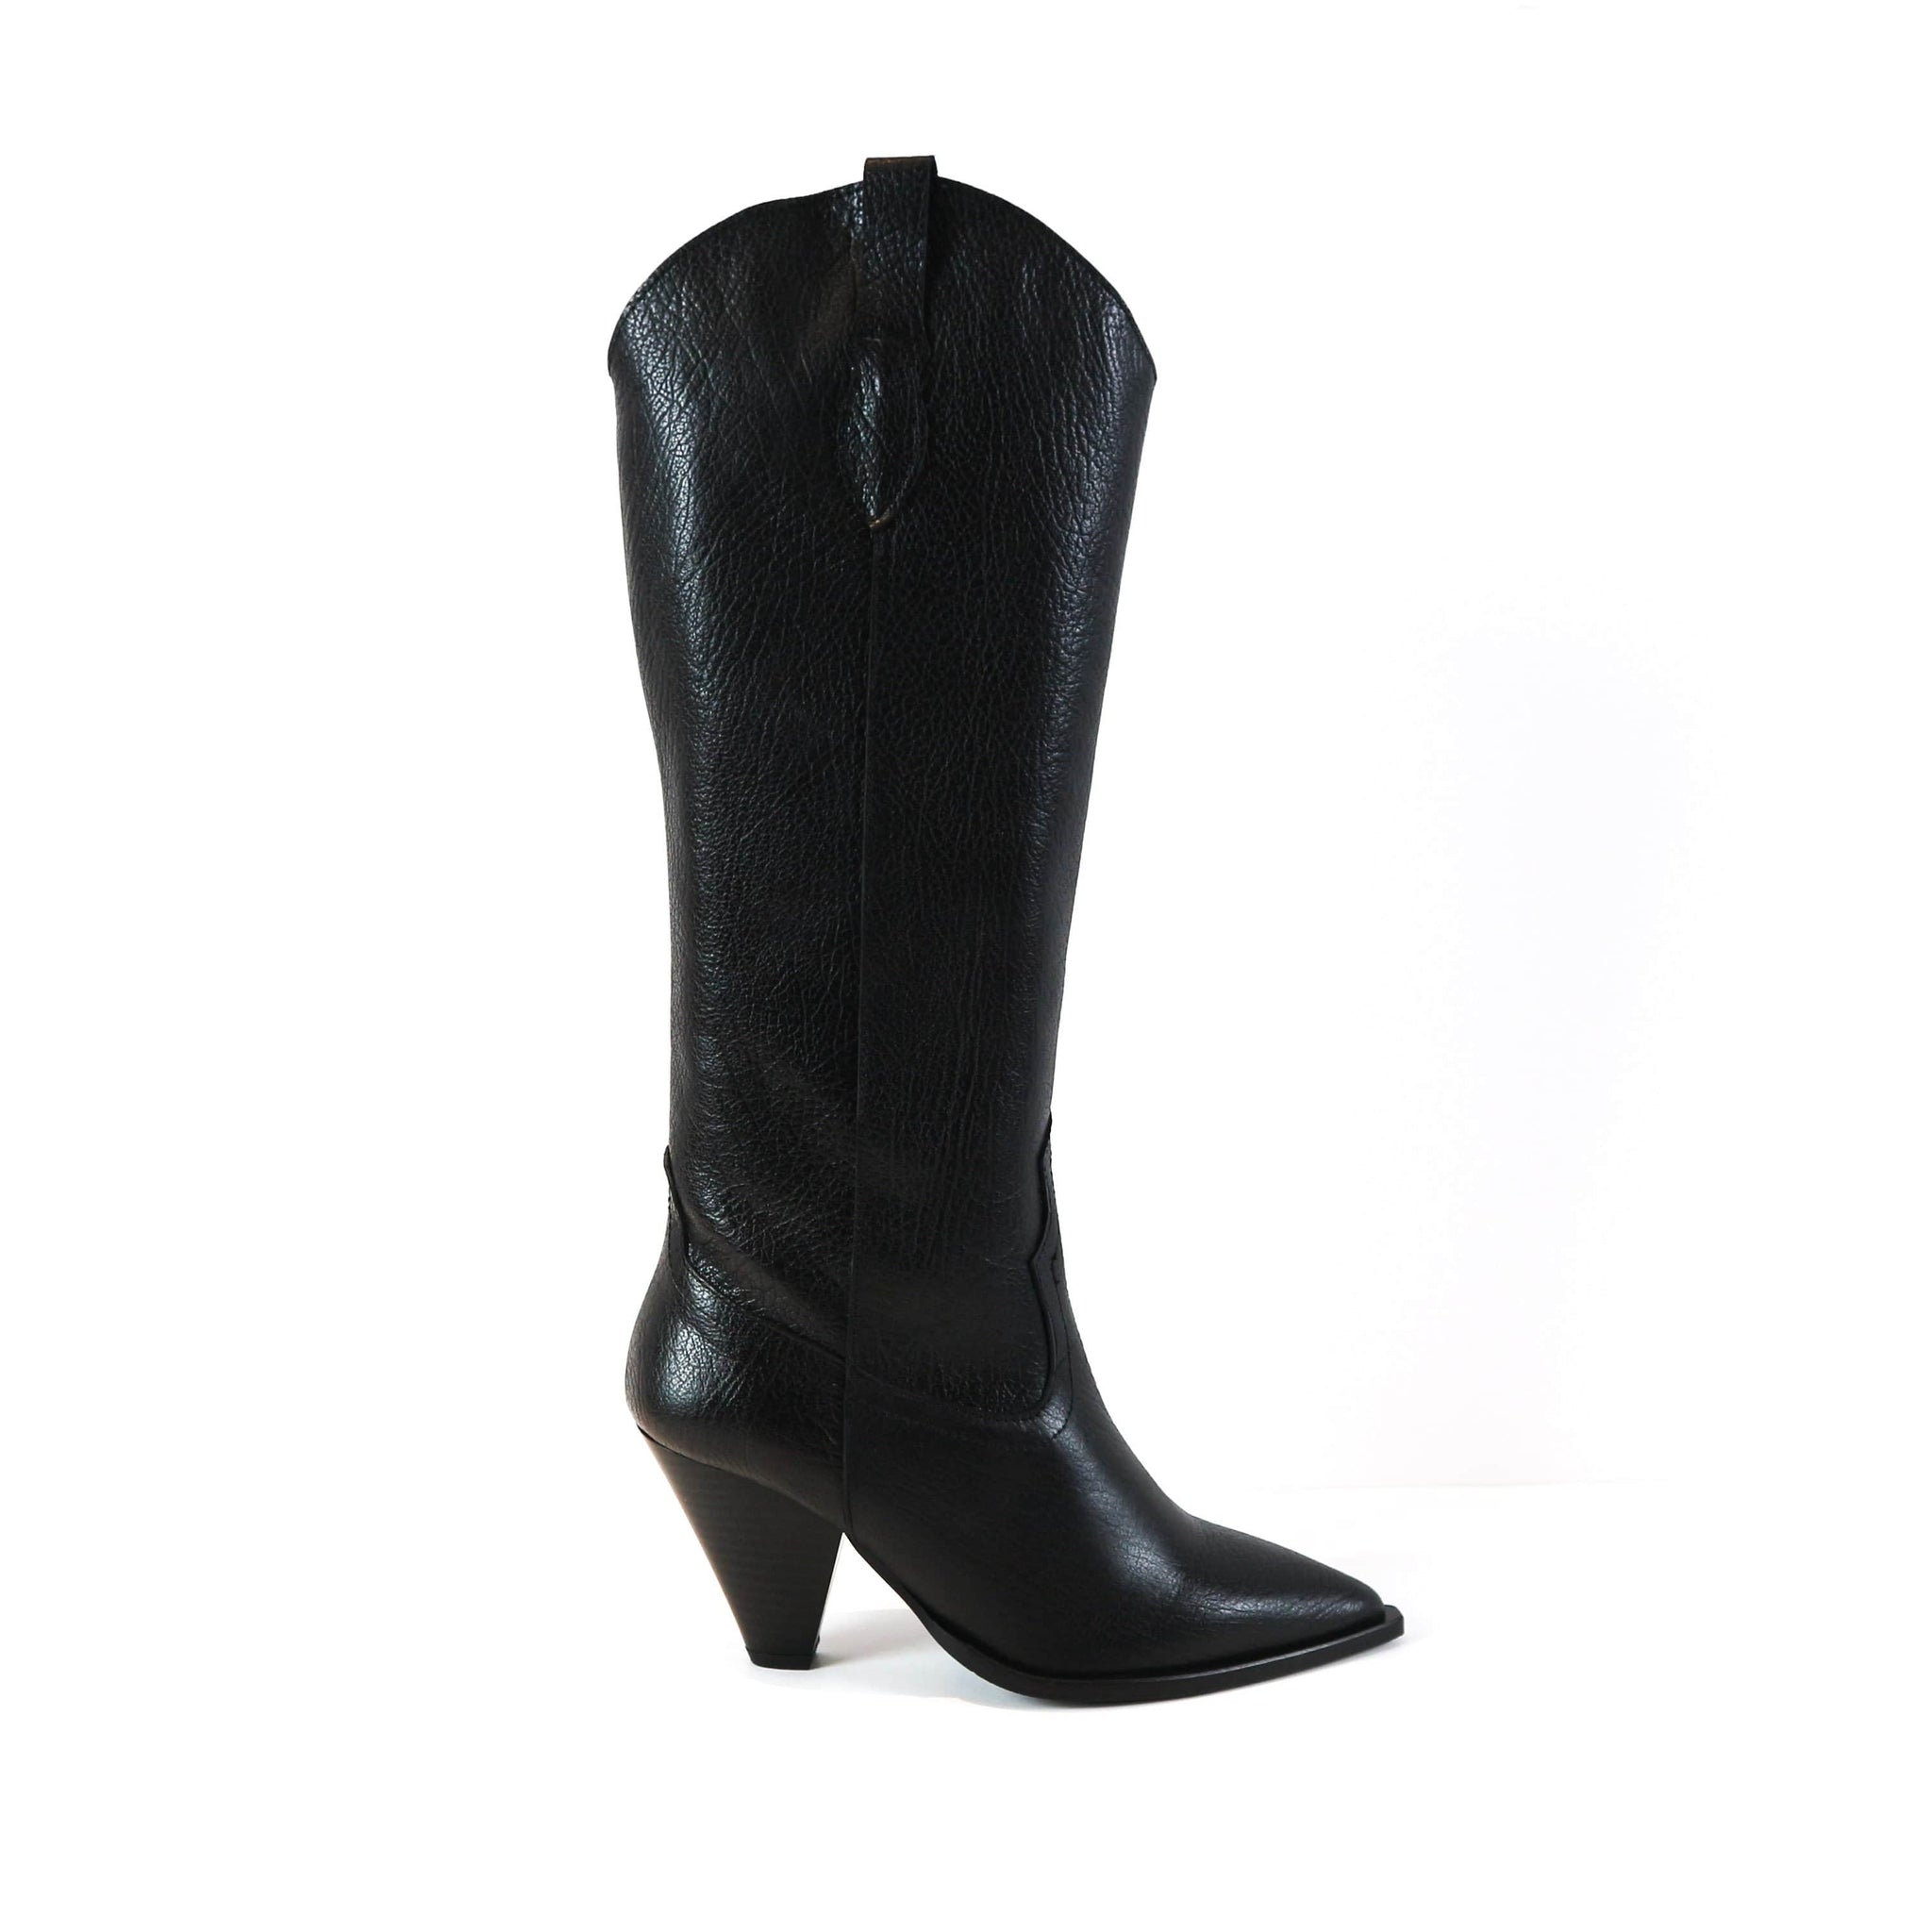 KIEARA | Black Leather Knee High Boots - TrystShoes